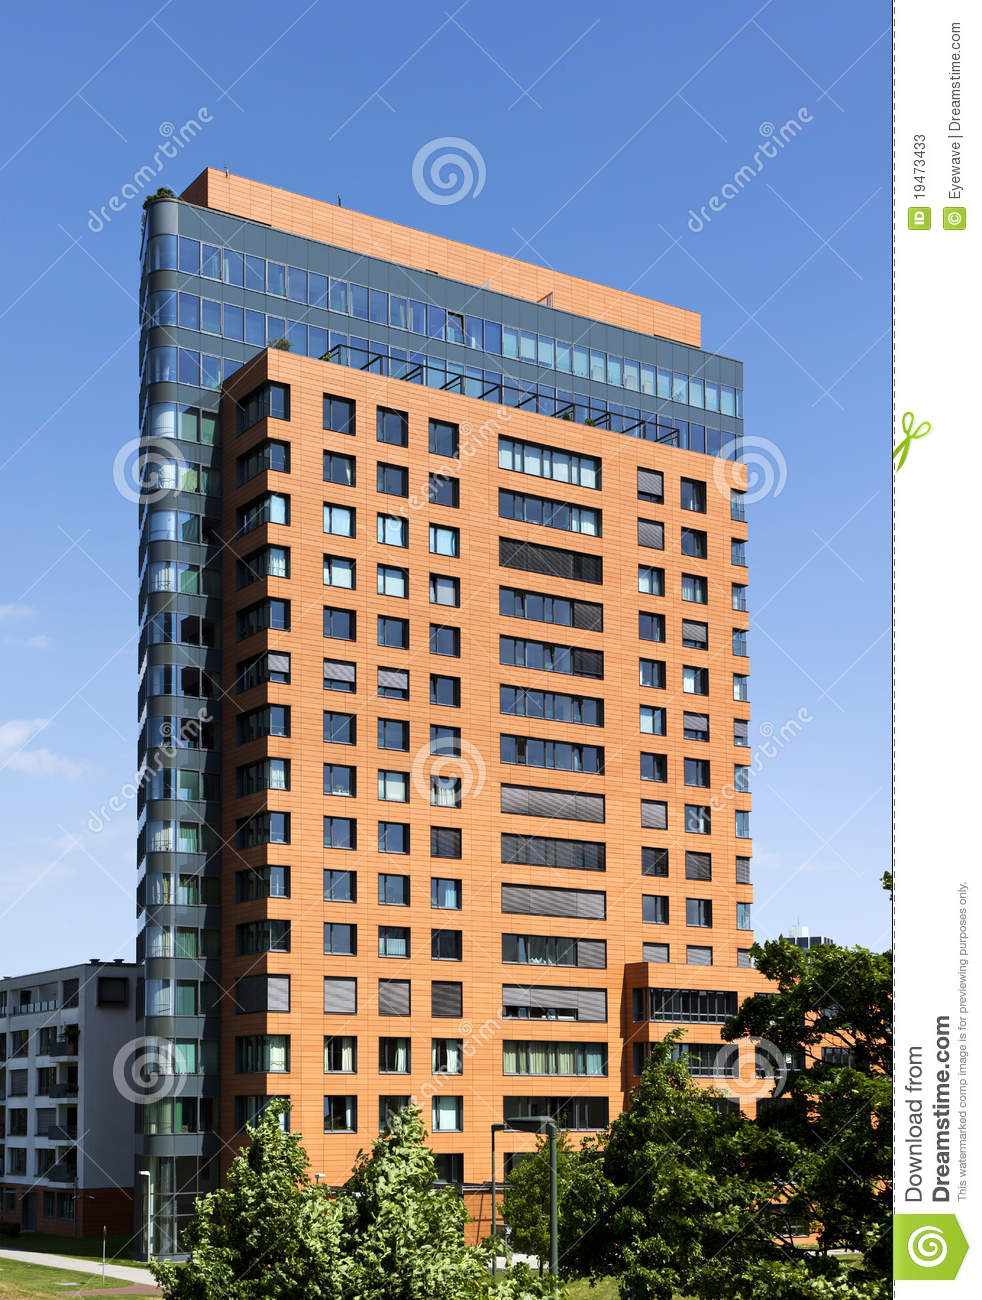 Tall Apartment Building Stock Image Image Of High Tall 19473433